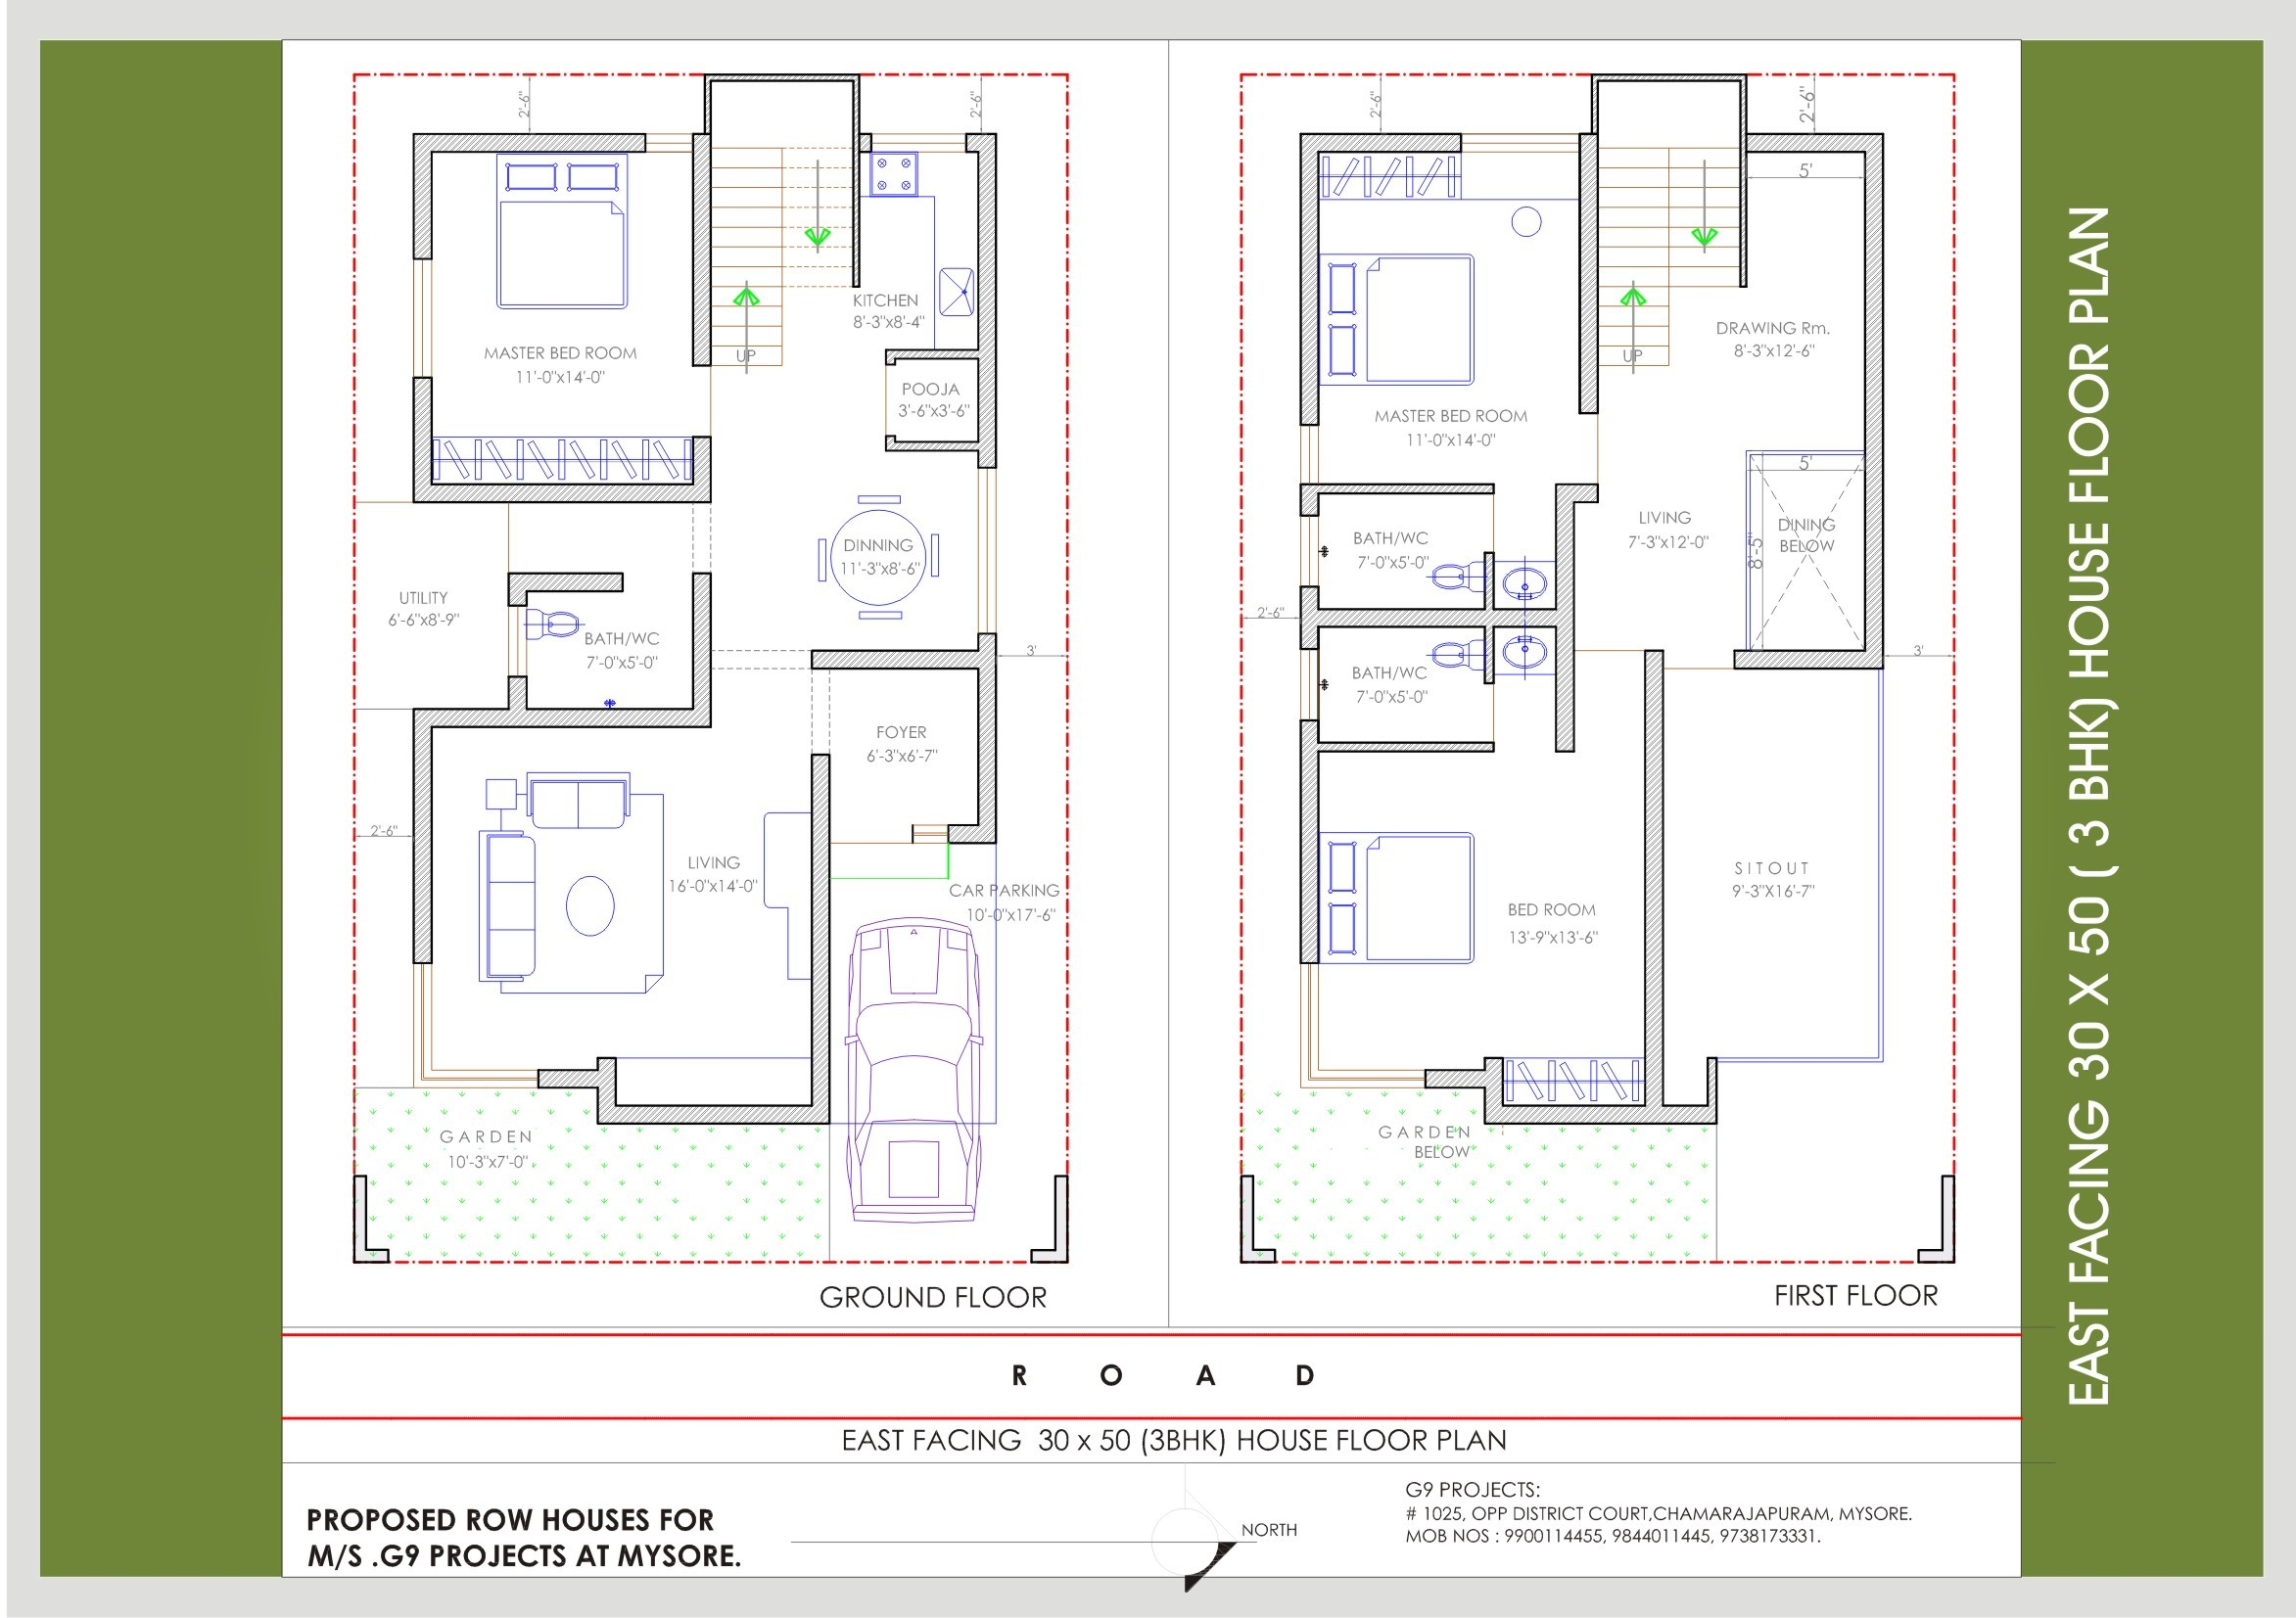 2 Story Villa Floor Plans Upcoming Residential Villas Beml Mysore One